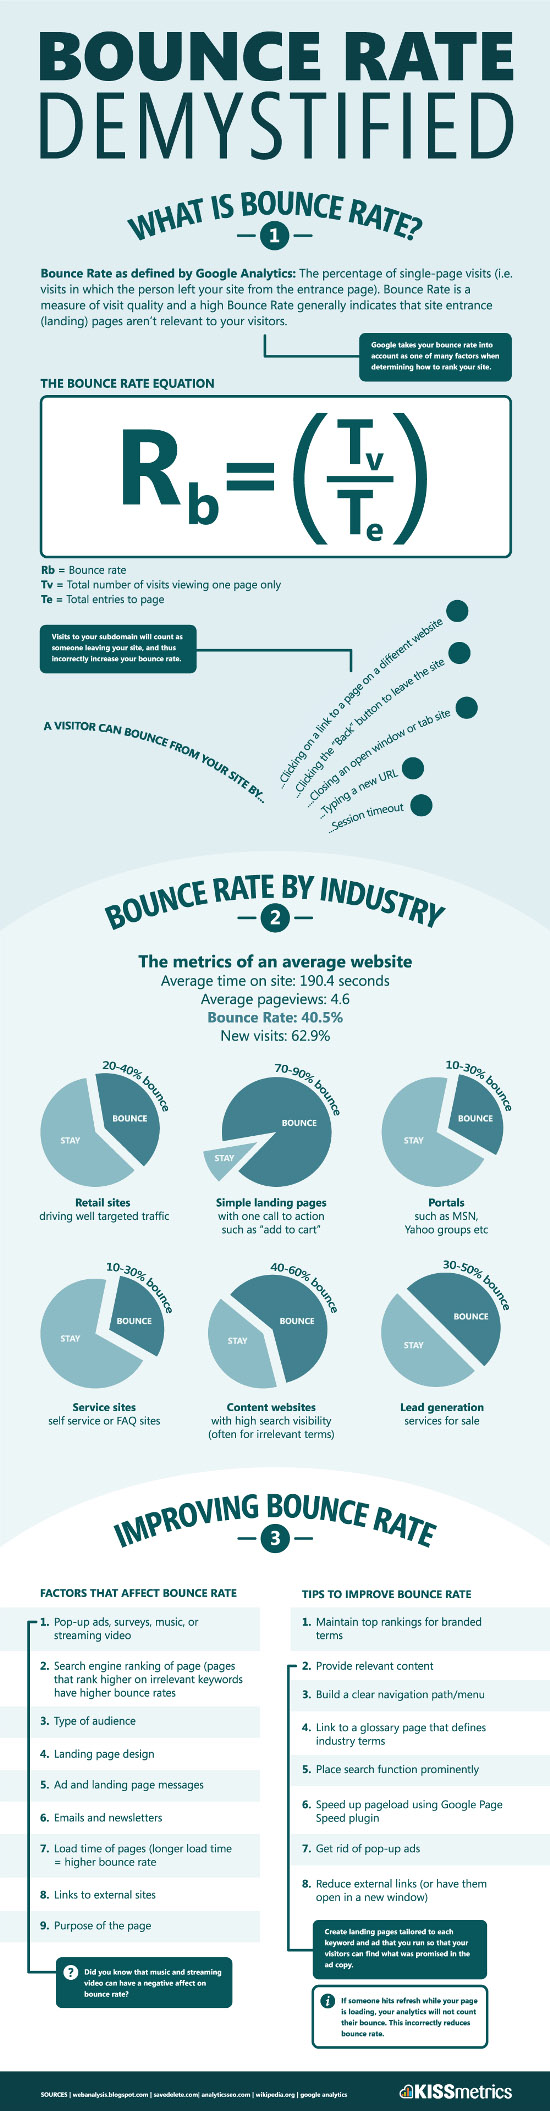 Reduccing bounce rate is an important goal that every blogger should try to get to.